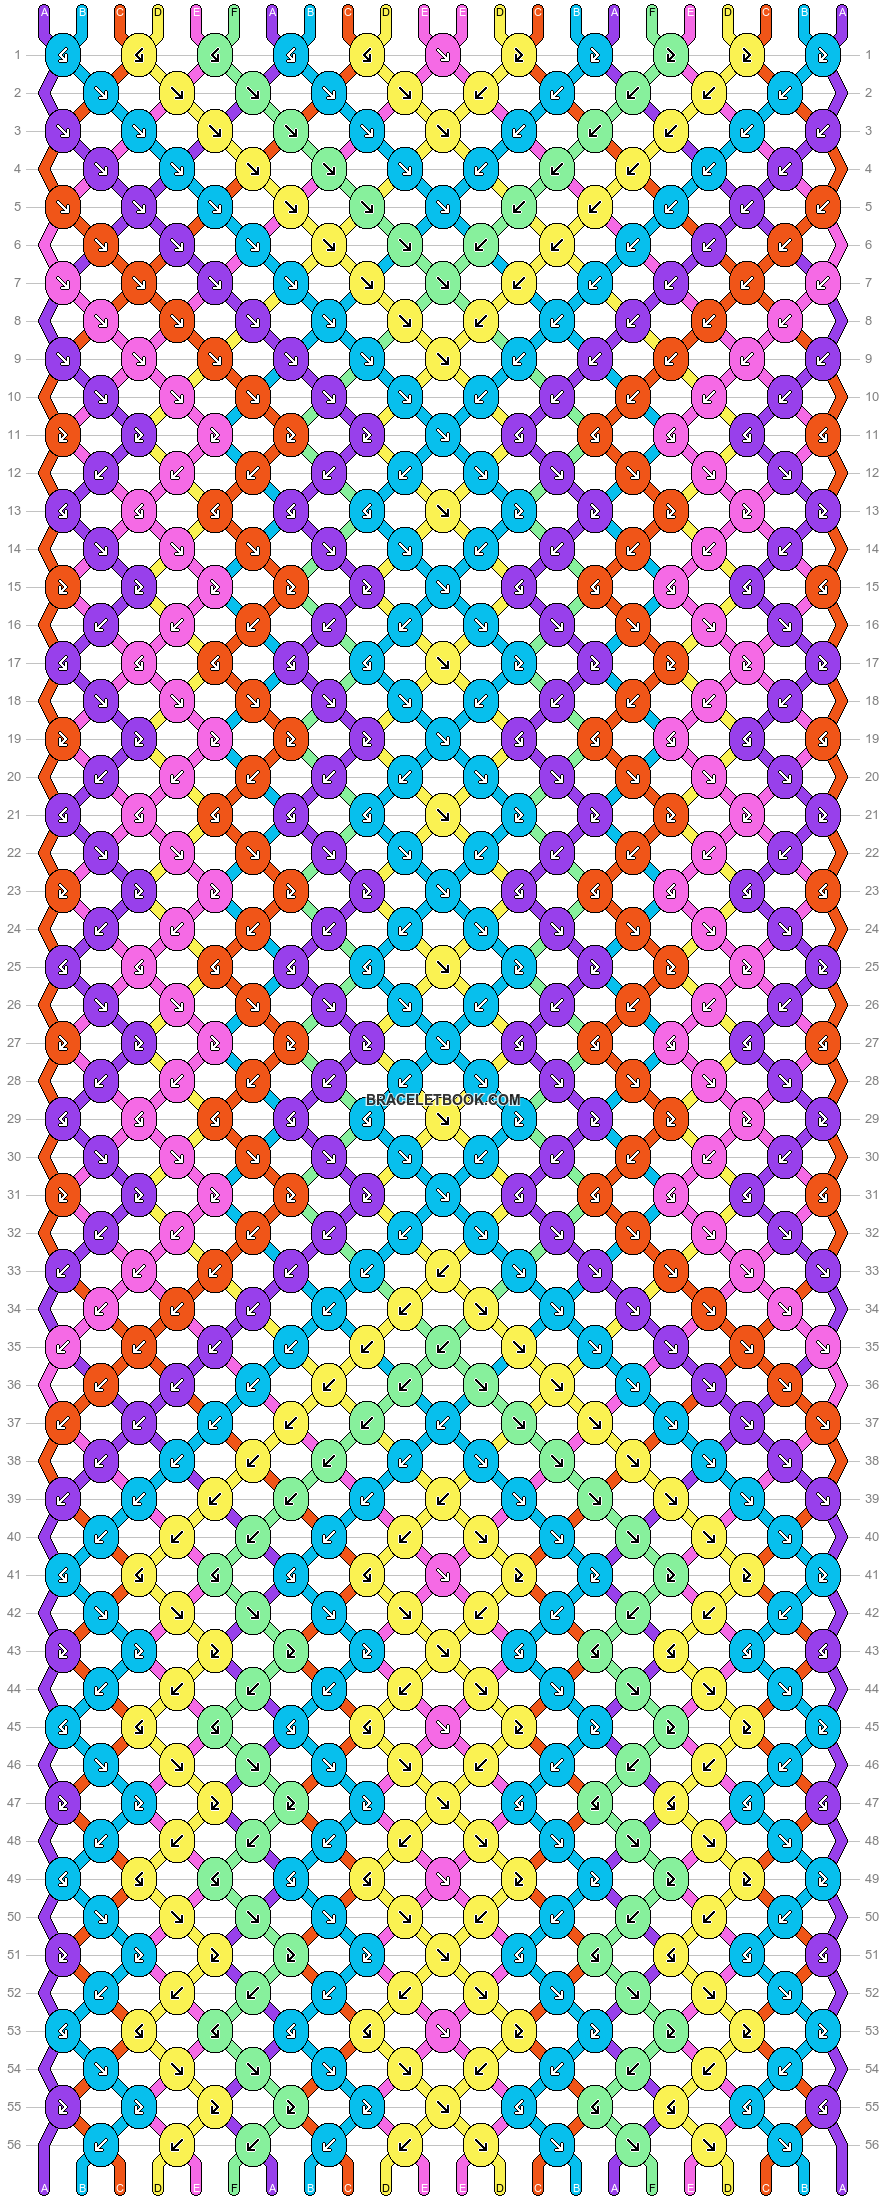 Normal Pattern #22688 added by fangngaf